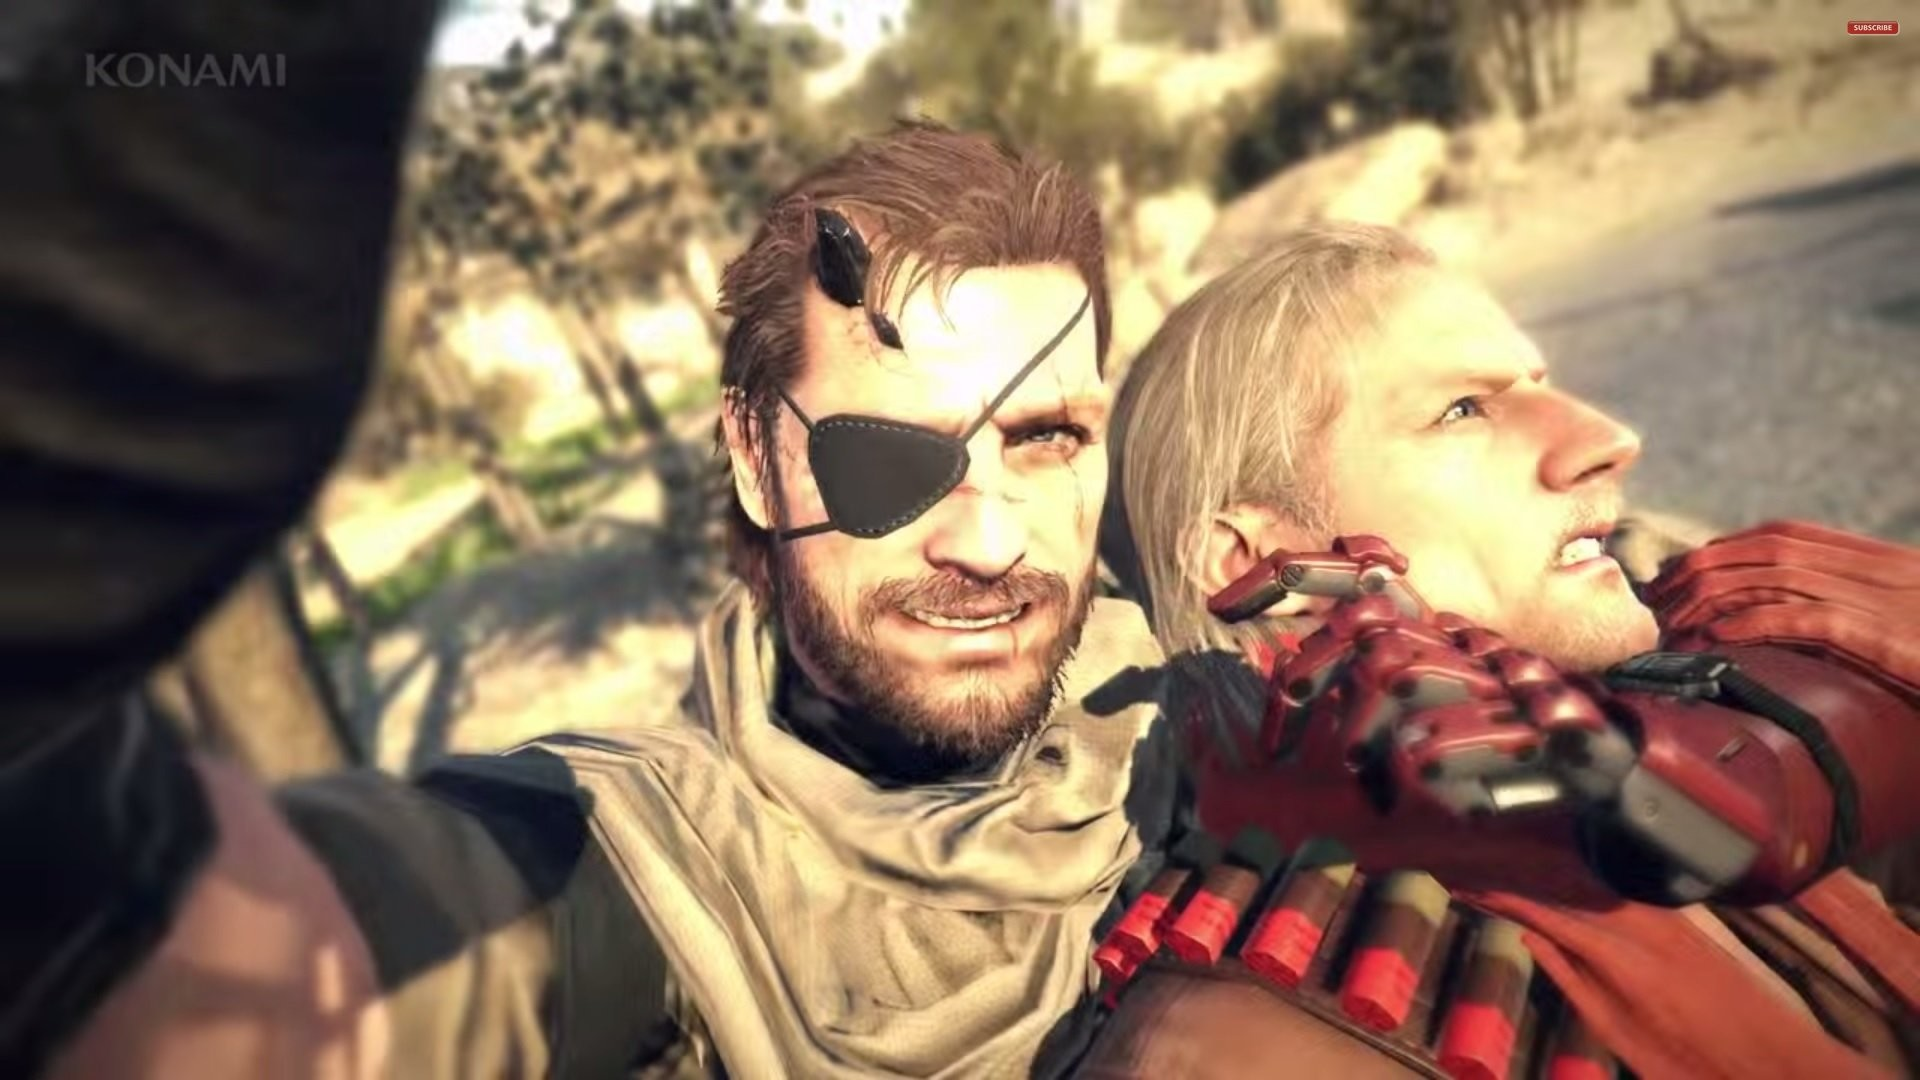 … metal gear solid phantom pain shooter stealth action military; mgs5 …